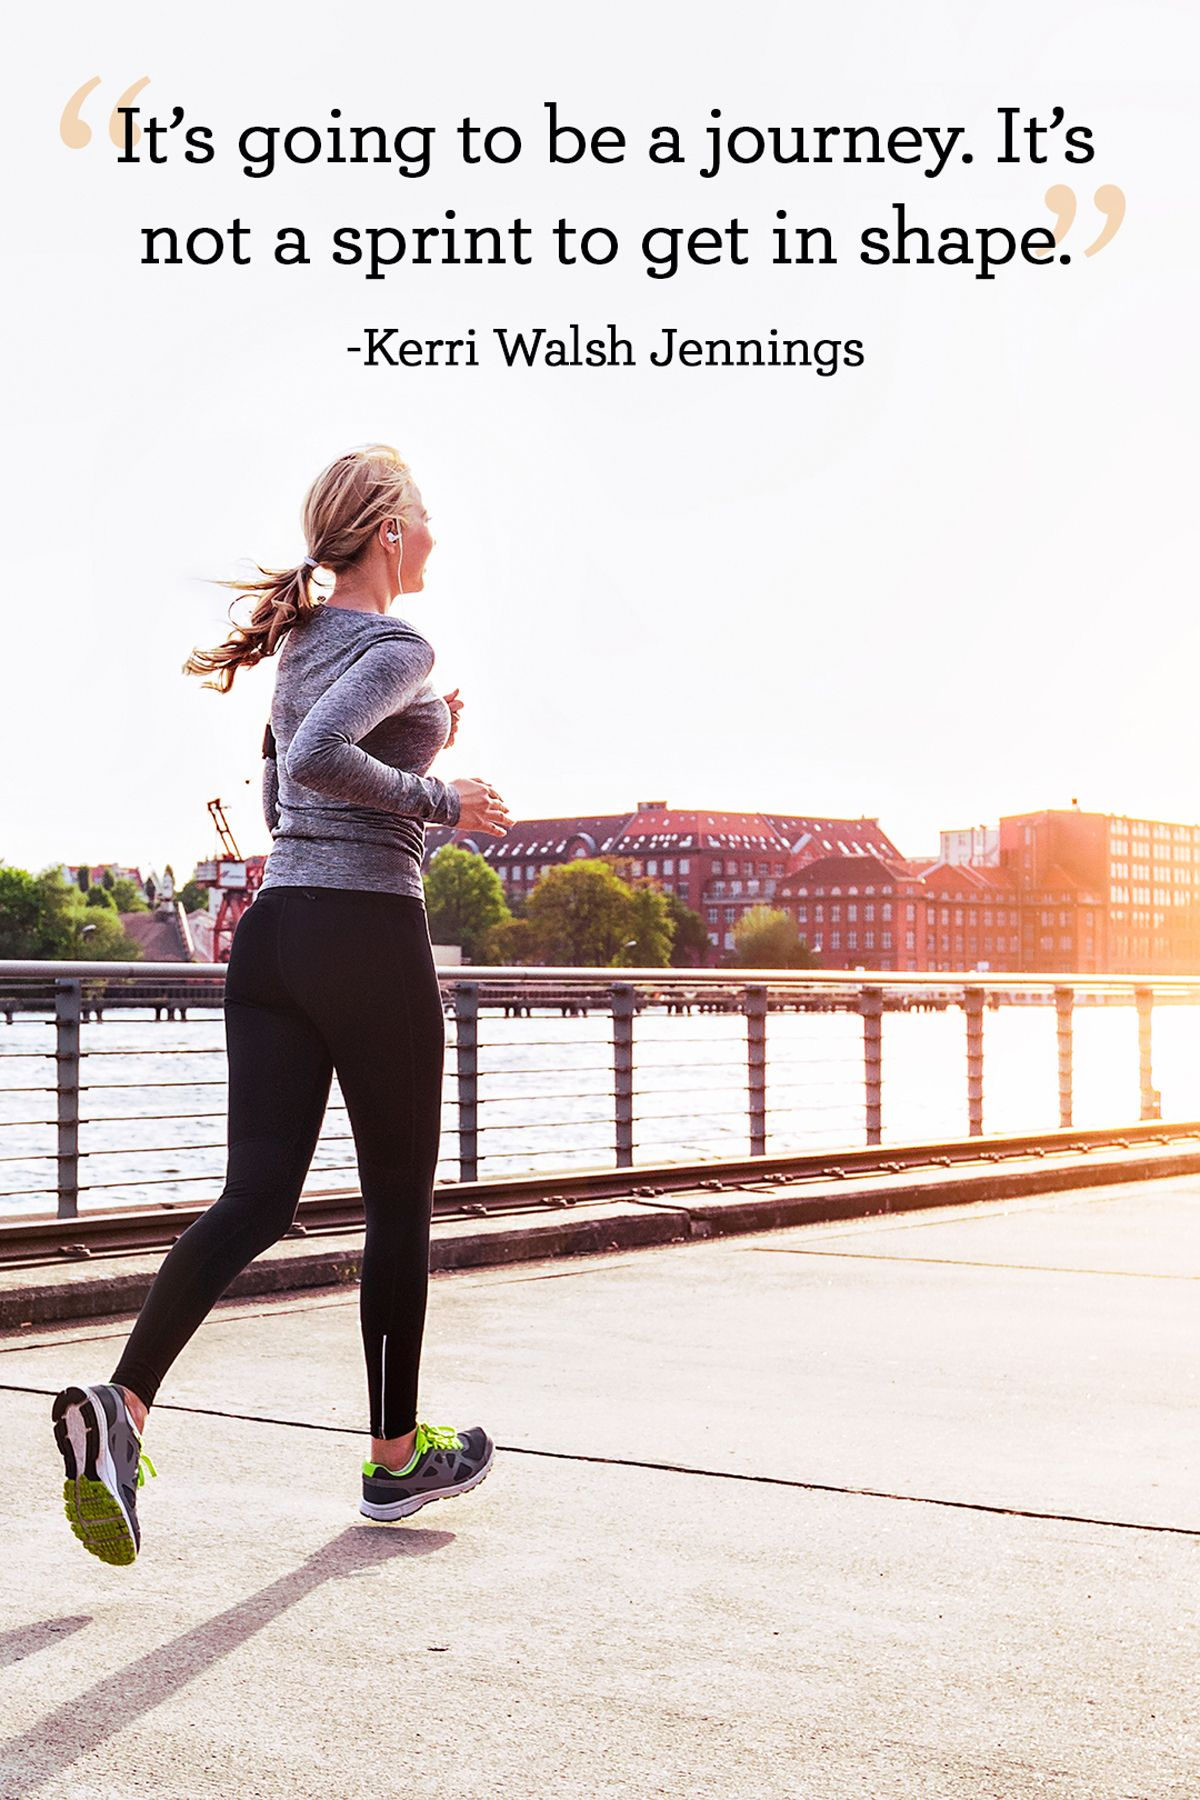 20 Weight Loss Motivation Quotes For Women - Motivational Fitness